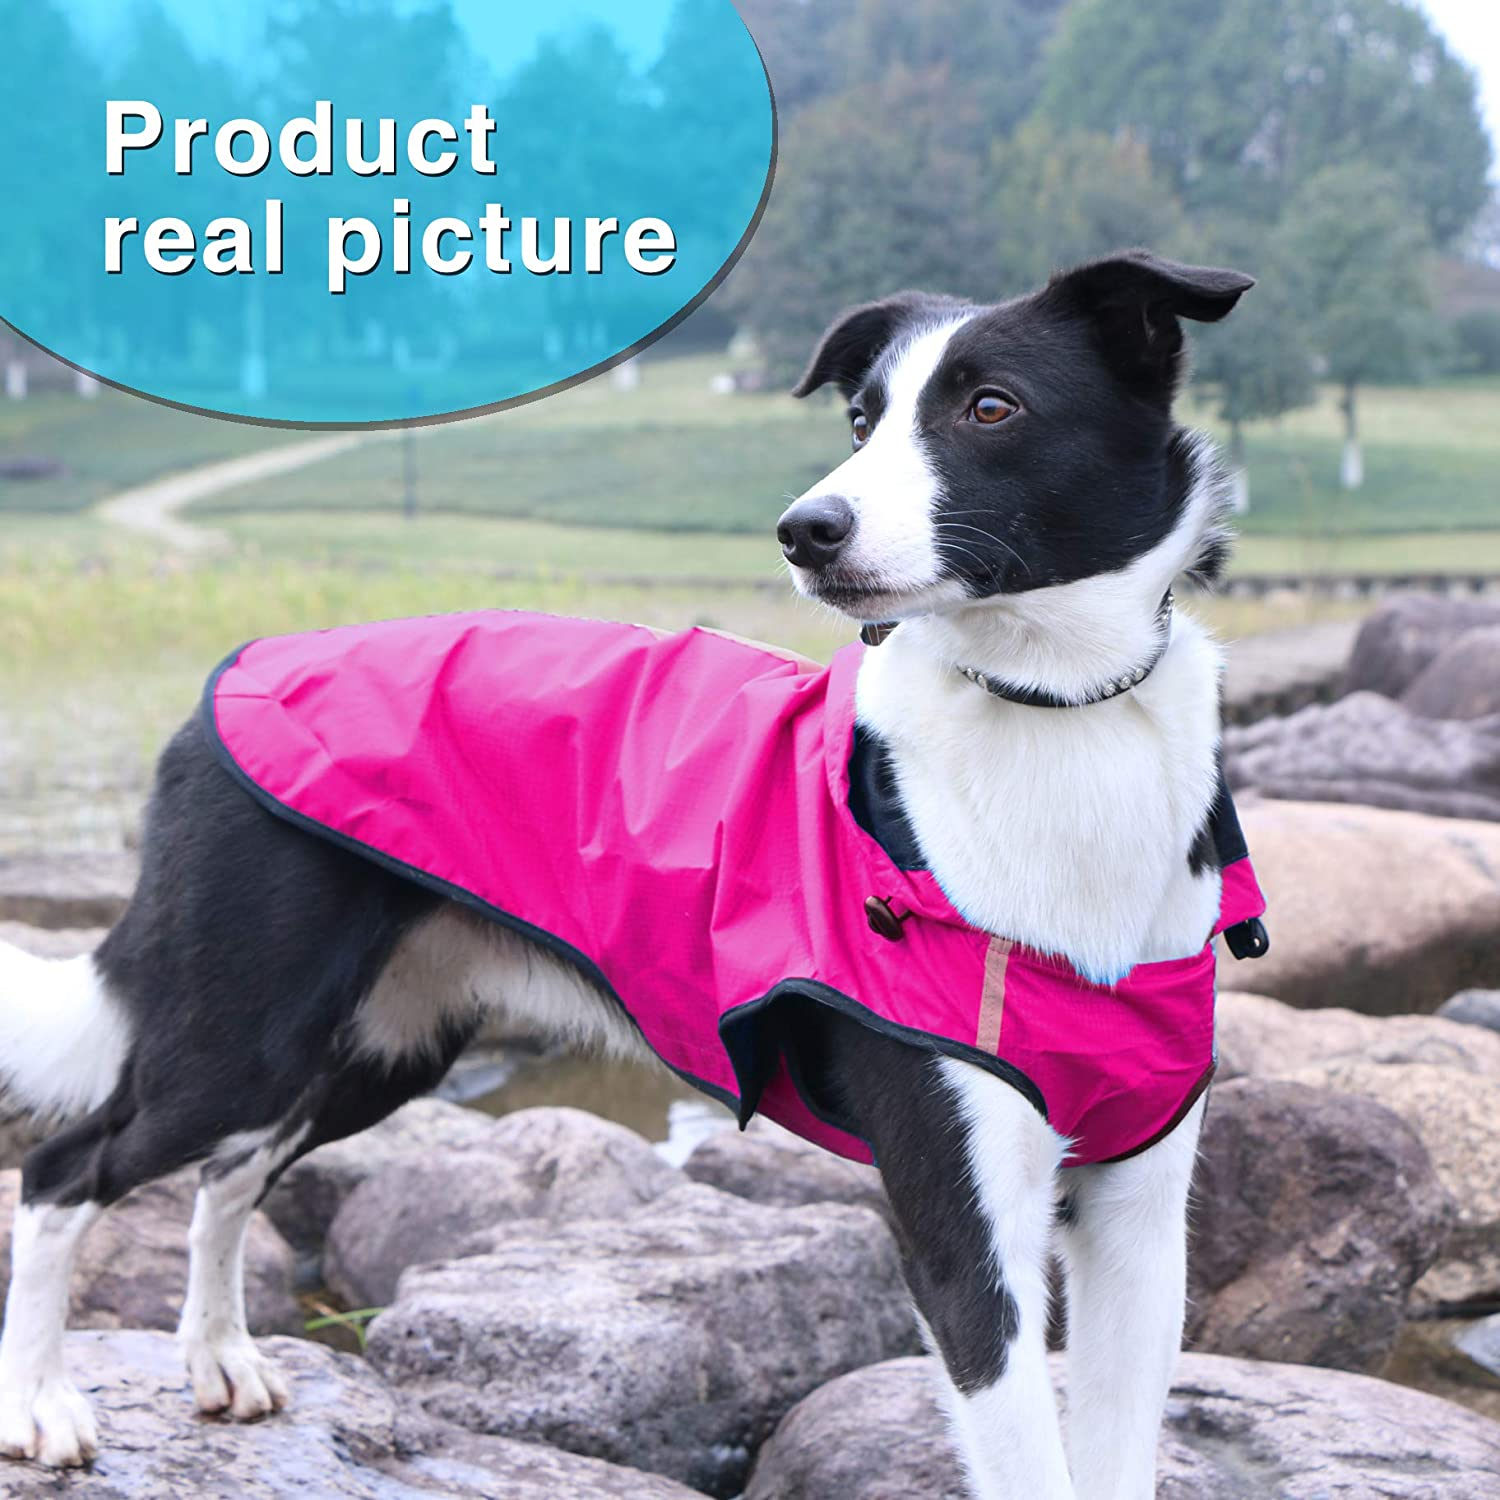 Kamots Beauty Dog Waterproof Raincoat Lightweight Packable Jacket with Reflective Stripes for High Visibility Safety/— Adjustable Hood Poncho for Small Medium Large Dogs